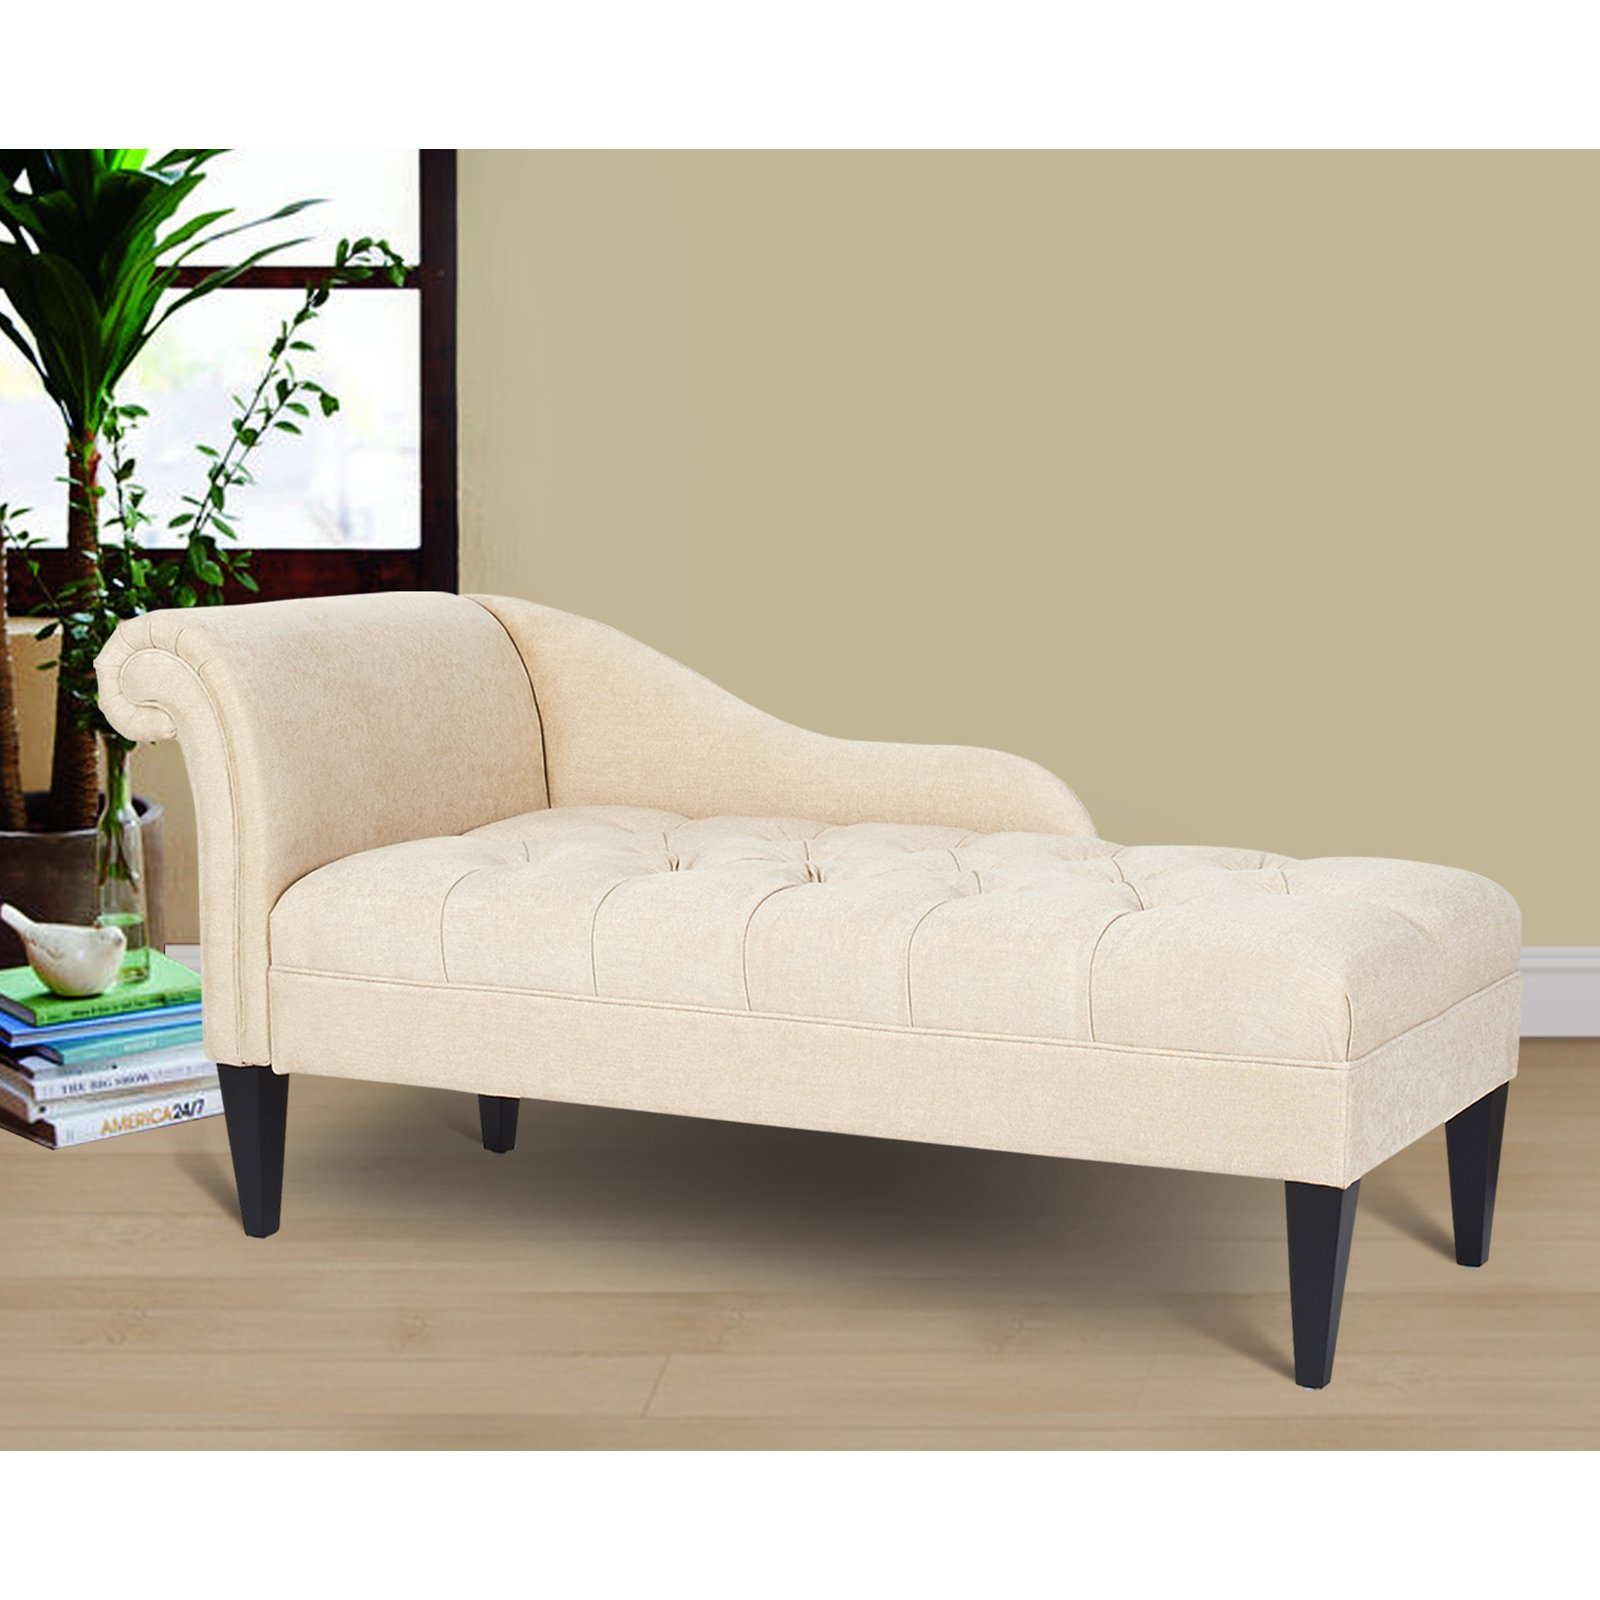 Jennifer Taylor Home, Chaise Lounge, Right Arm Facing, Beige, Hand Tufted